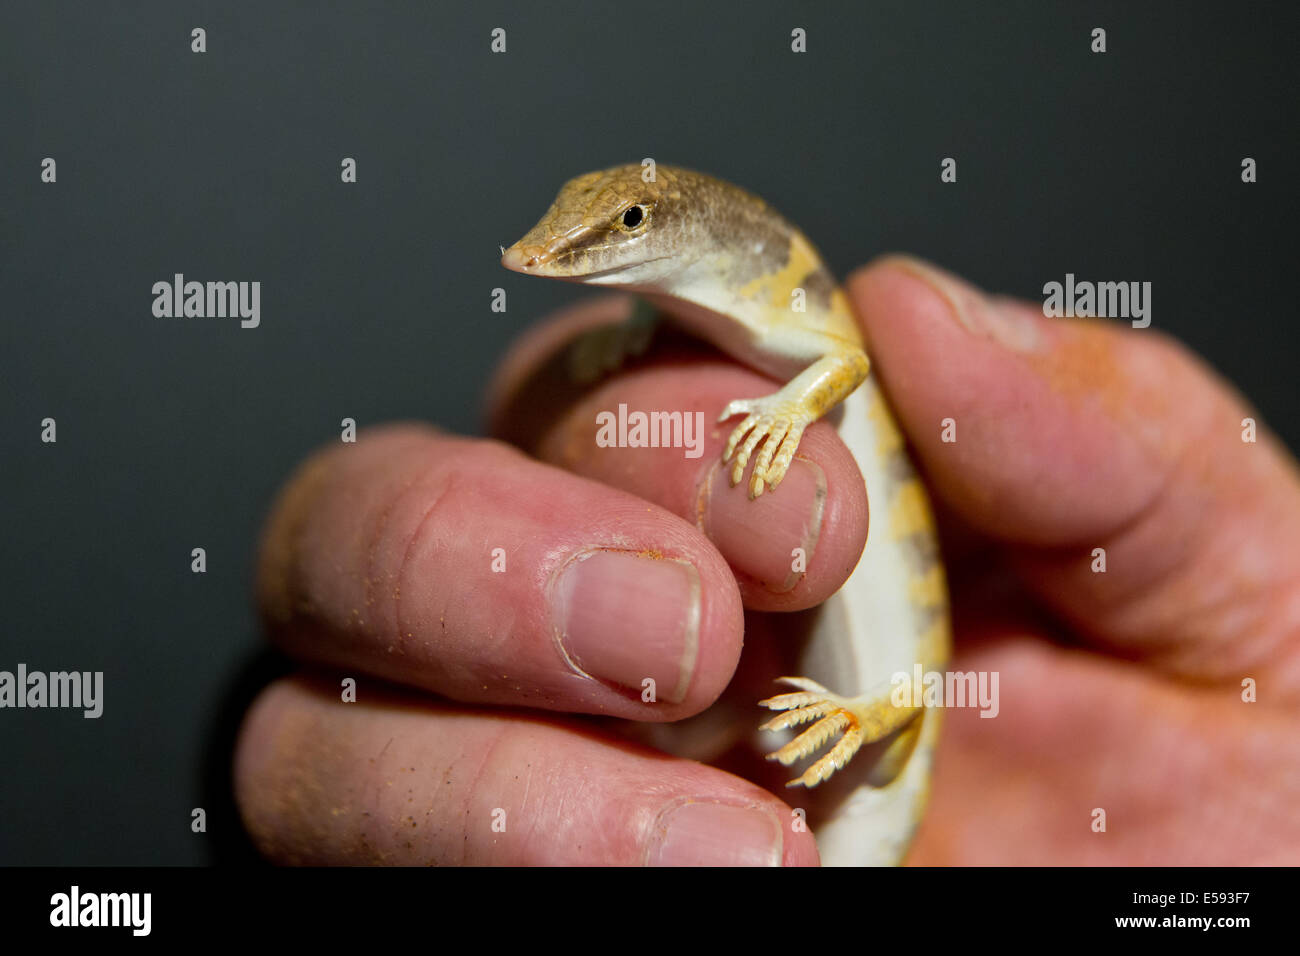 Nuremberg, Germany. 23rd July, 2014. A sandfish, a species of skink, is held in the new 'Bionicum' in the - Stock Image